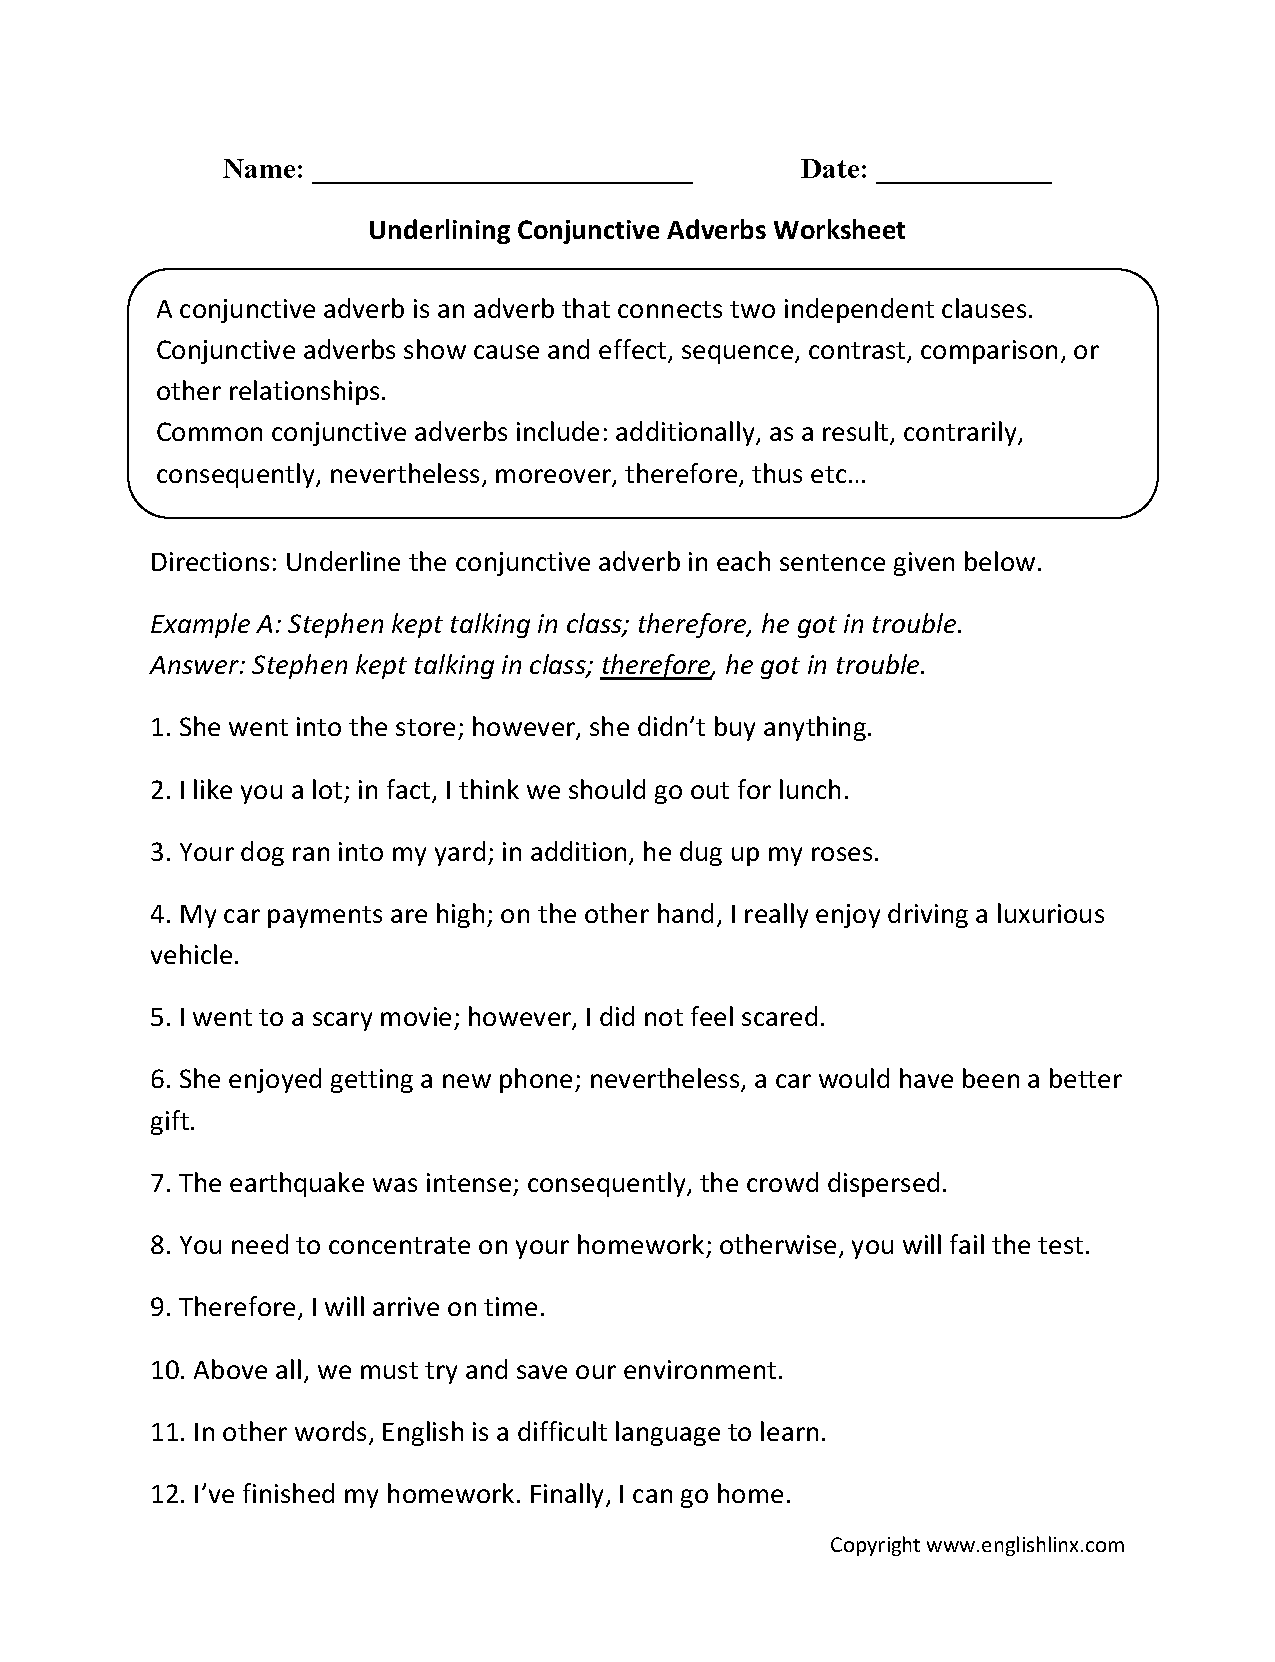 Proatmealus  Fascinating Englishlinxcom  Conjunctions Worksheets With Fetching Worksheet With Adorable Question Answer Relationship Worksheet Also Area Of A Kite Worksheet In Addition Easter Comprehension Worksheets And Rainforest Worksheet As Well As Number Line Multiplication Worksheet Additionally Poetry Worksheets Pdf From Englishlinxcom With Proatmealus  Fetching Englishlinxcom  Conjunctions Worksheets With Adorable Worksheet And Fascinating Question Answer Relationship Worksheet Also Area Of A Kite Worksheet In Addition Easter Comprehension Worksheets From Englishlinxcom